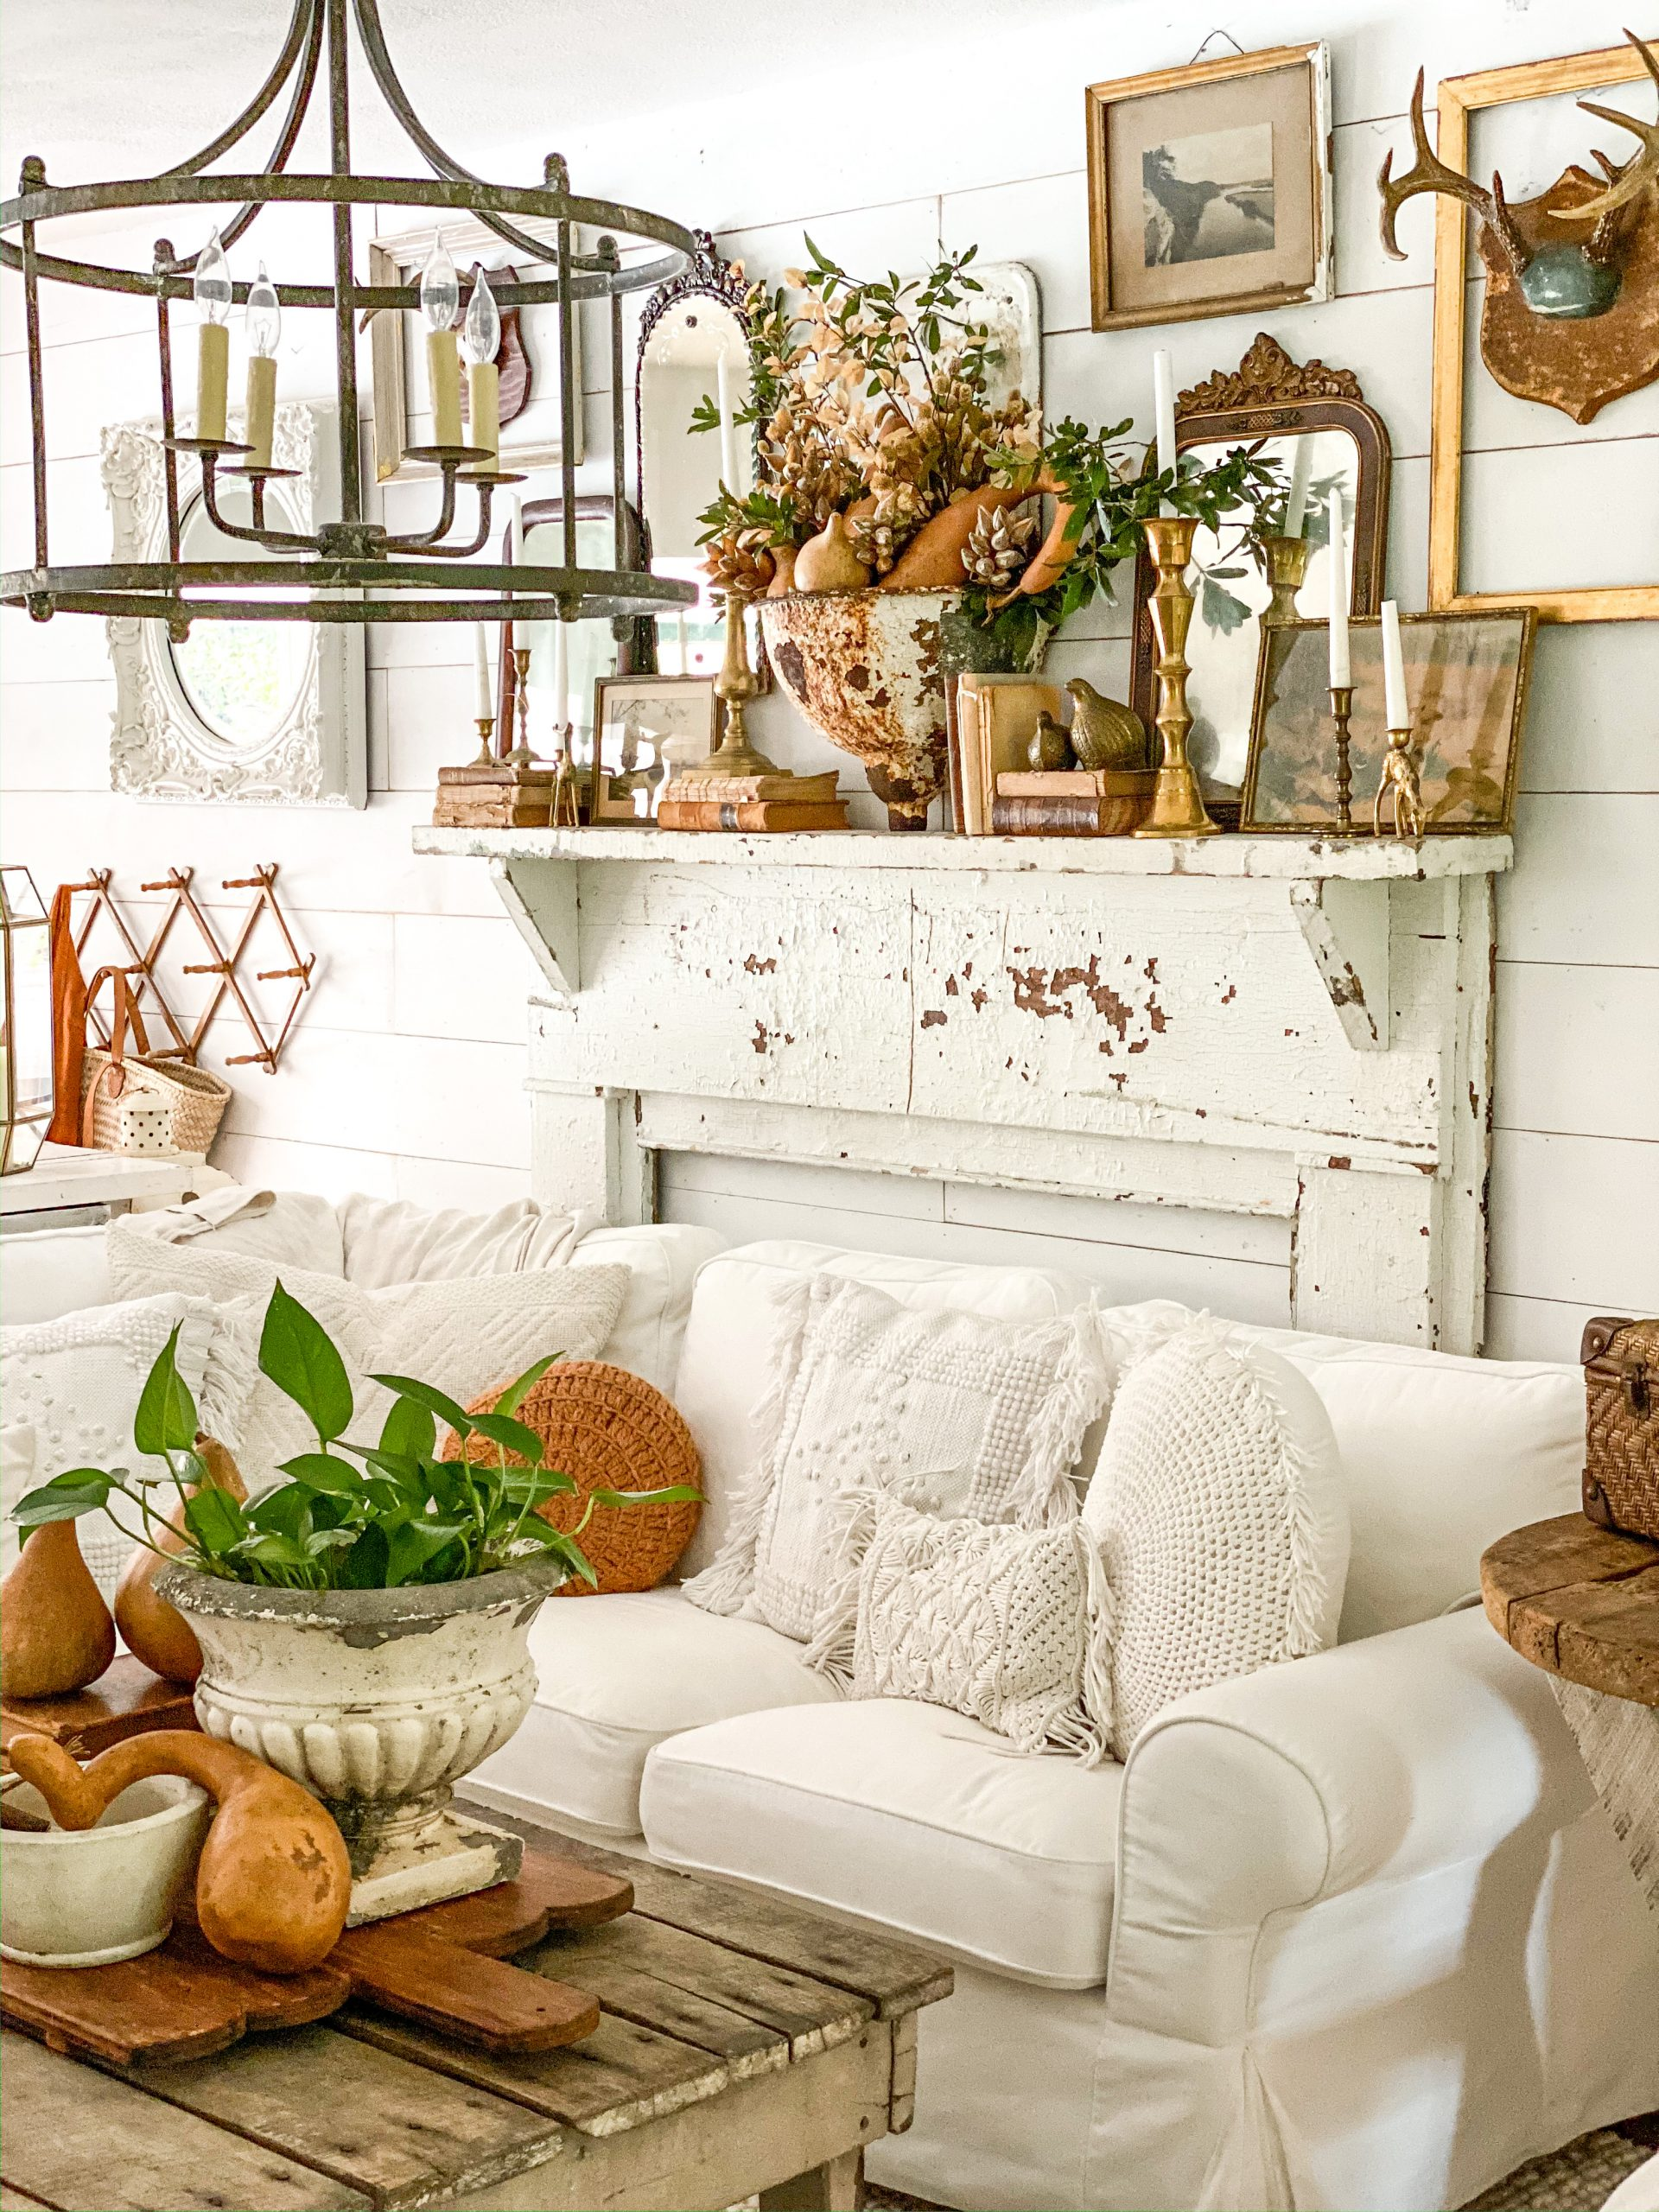 3 Really Unique Things to Add to Your Fall Mantel